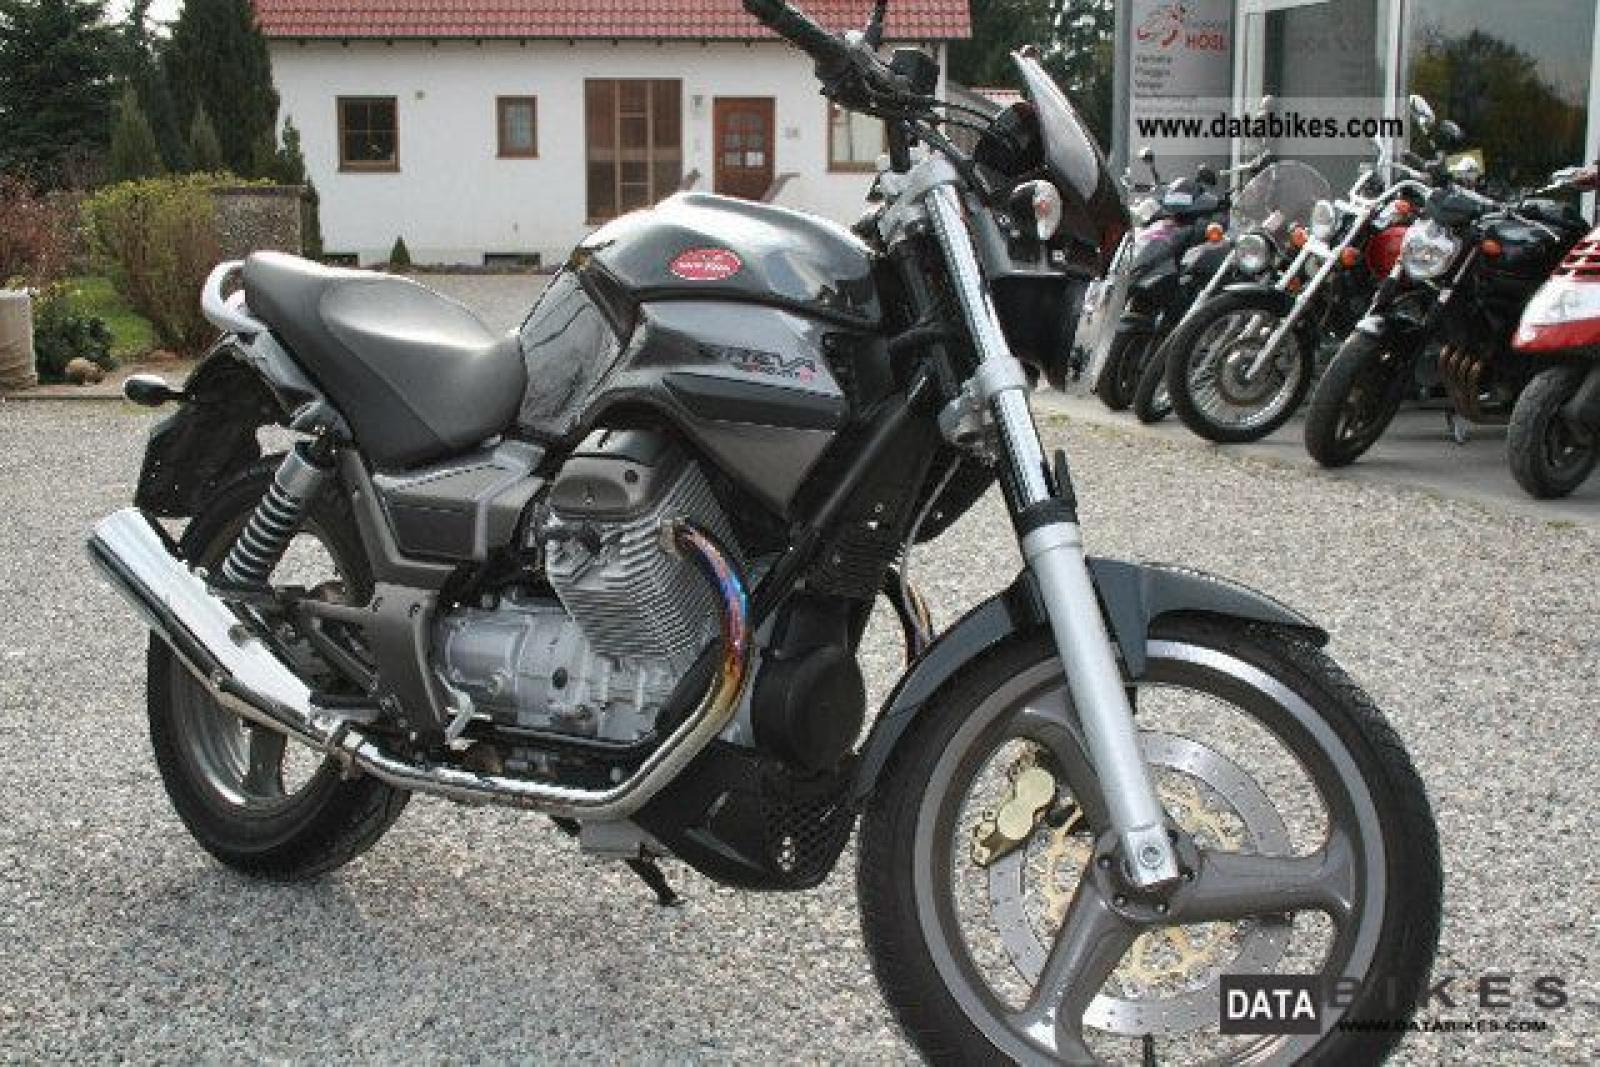 2006 moto guzzi breva v750 ie moto zombdrive com. Black Bedroom Furniture Sets. Home Design Ideas